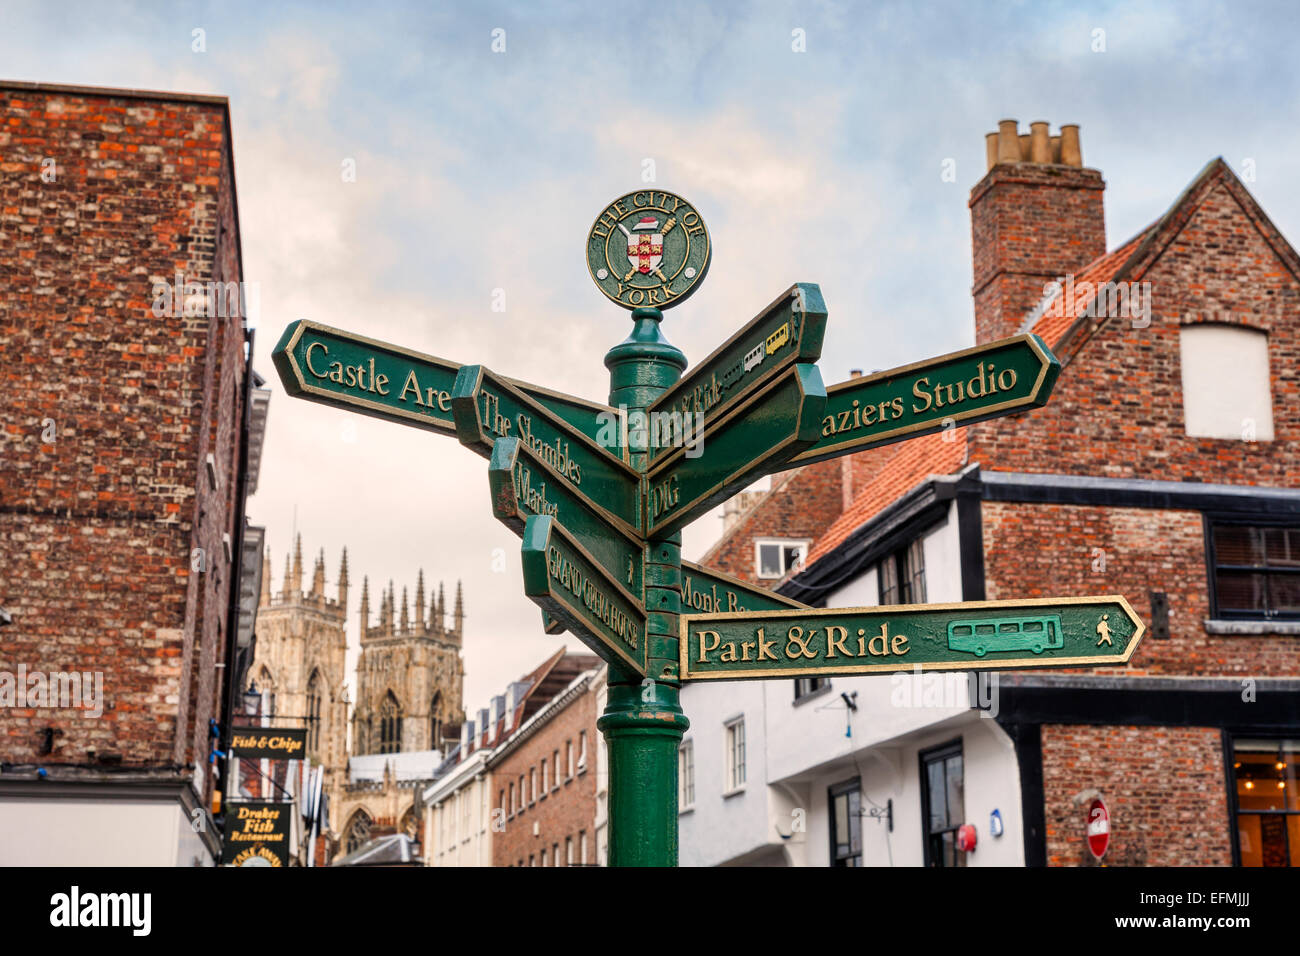 Signpost showing places of interest in Kings Square, York. Focus on sign. - Stock Image